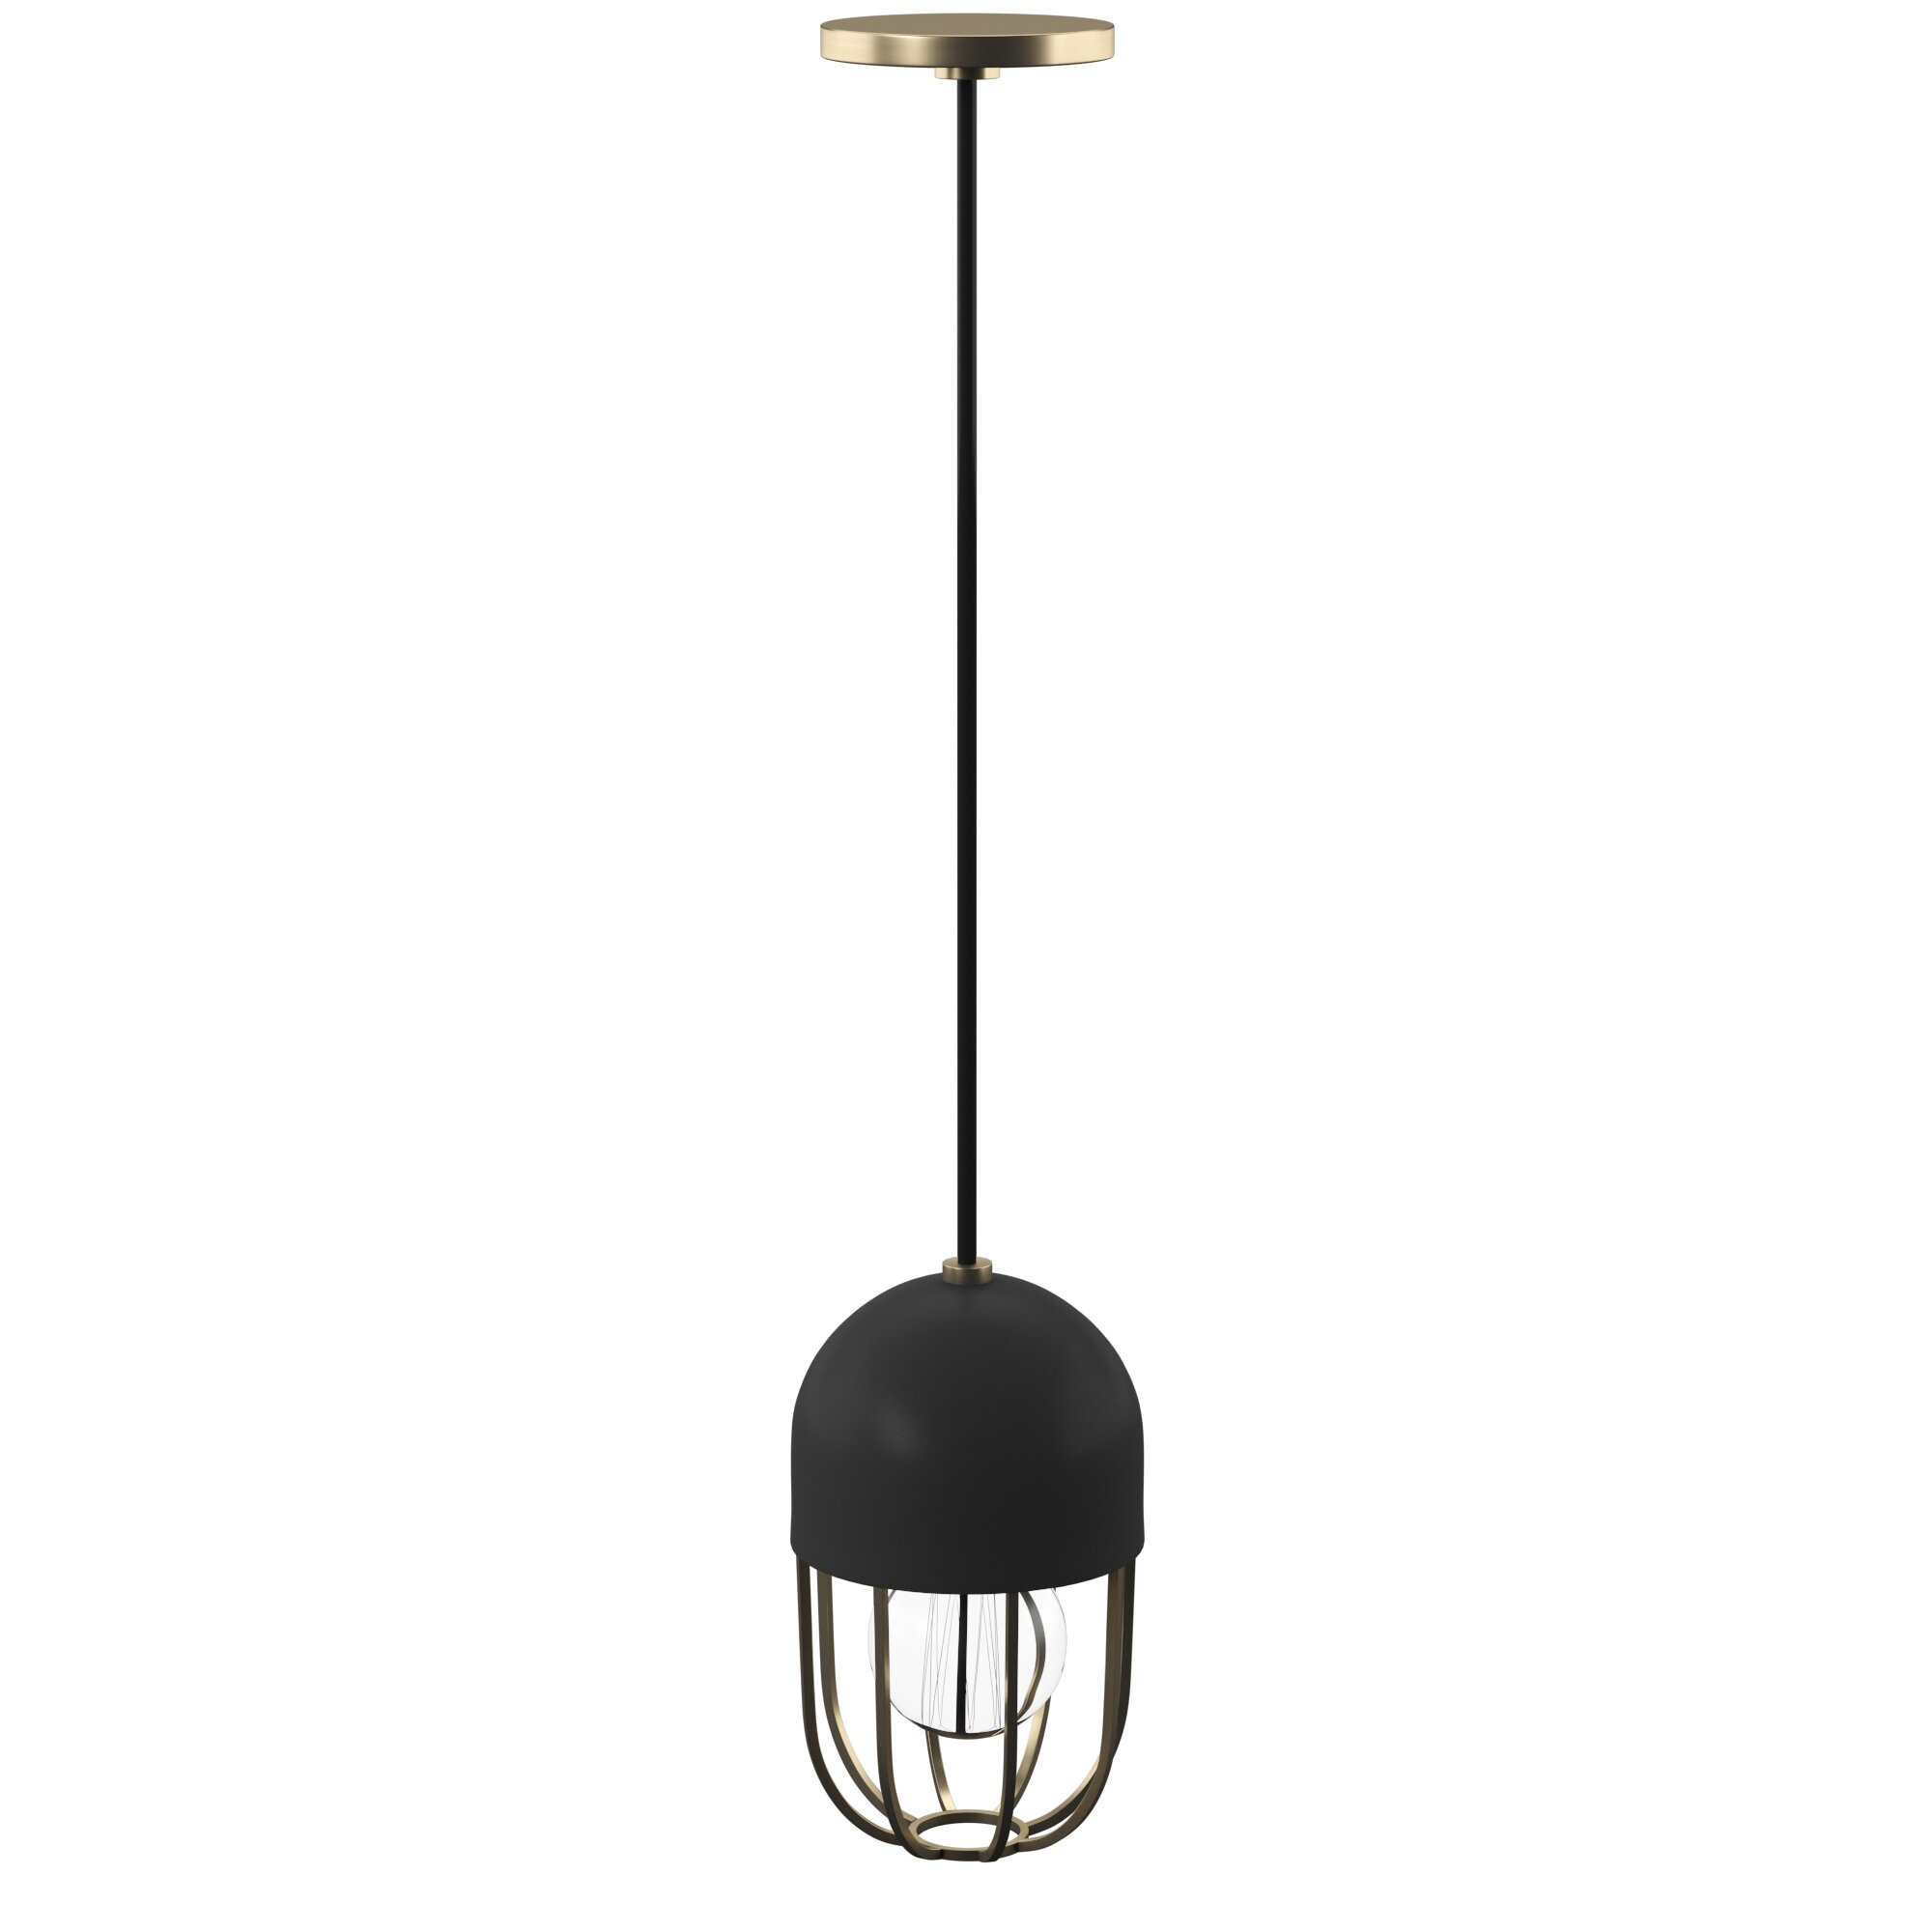 Kater 1 Light Single Dome Pendant Within Priston 1 Light Single Dome Pendants (View 15 of 30)